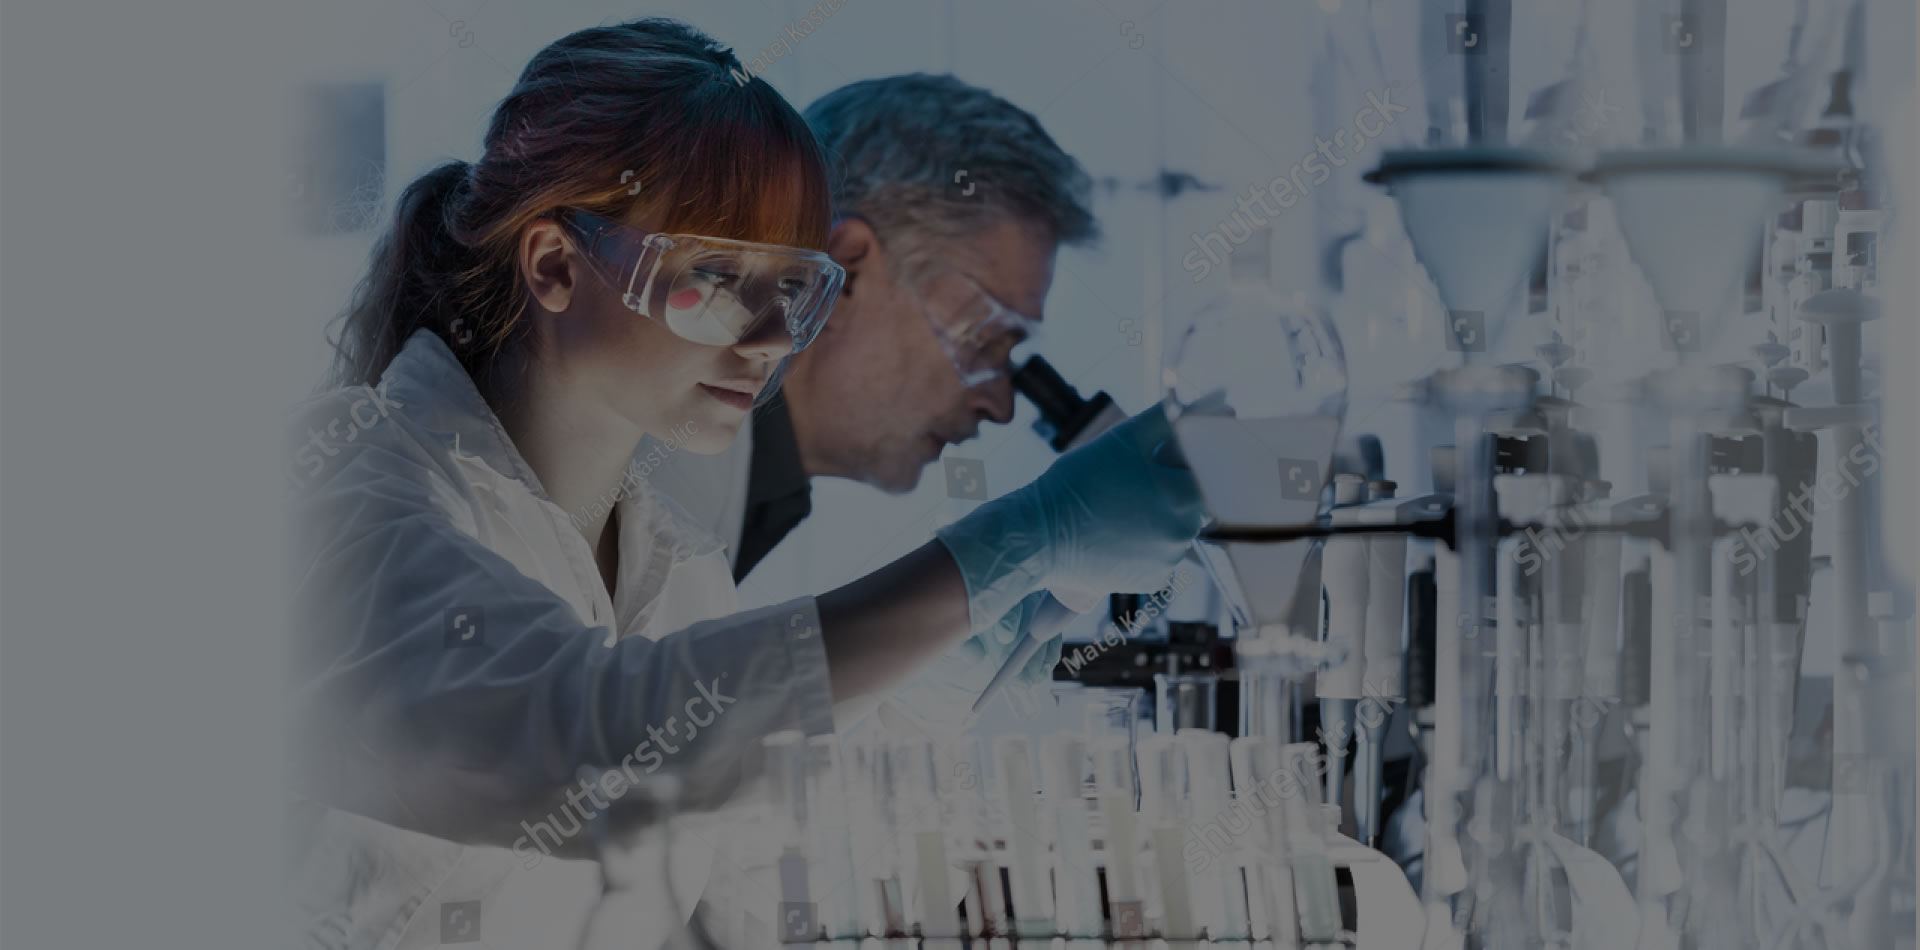 Sentinel Diagnostics is a leader in Research and Development